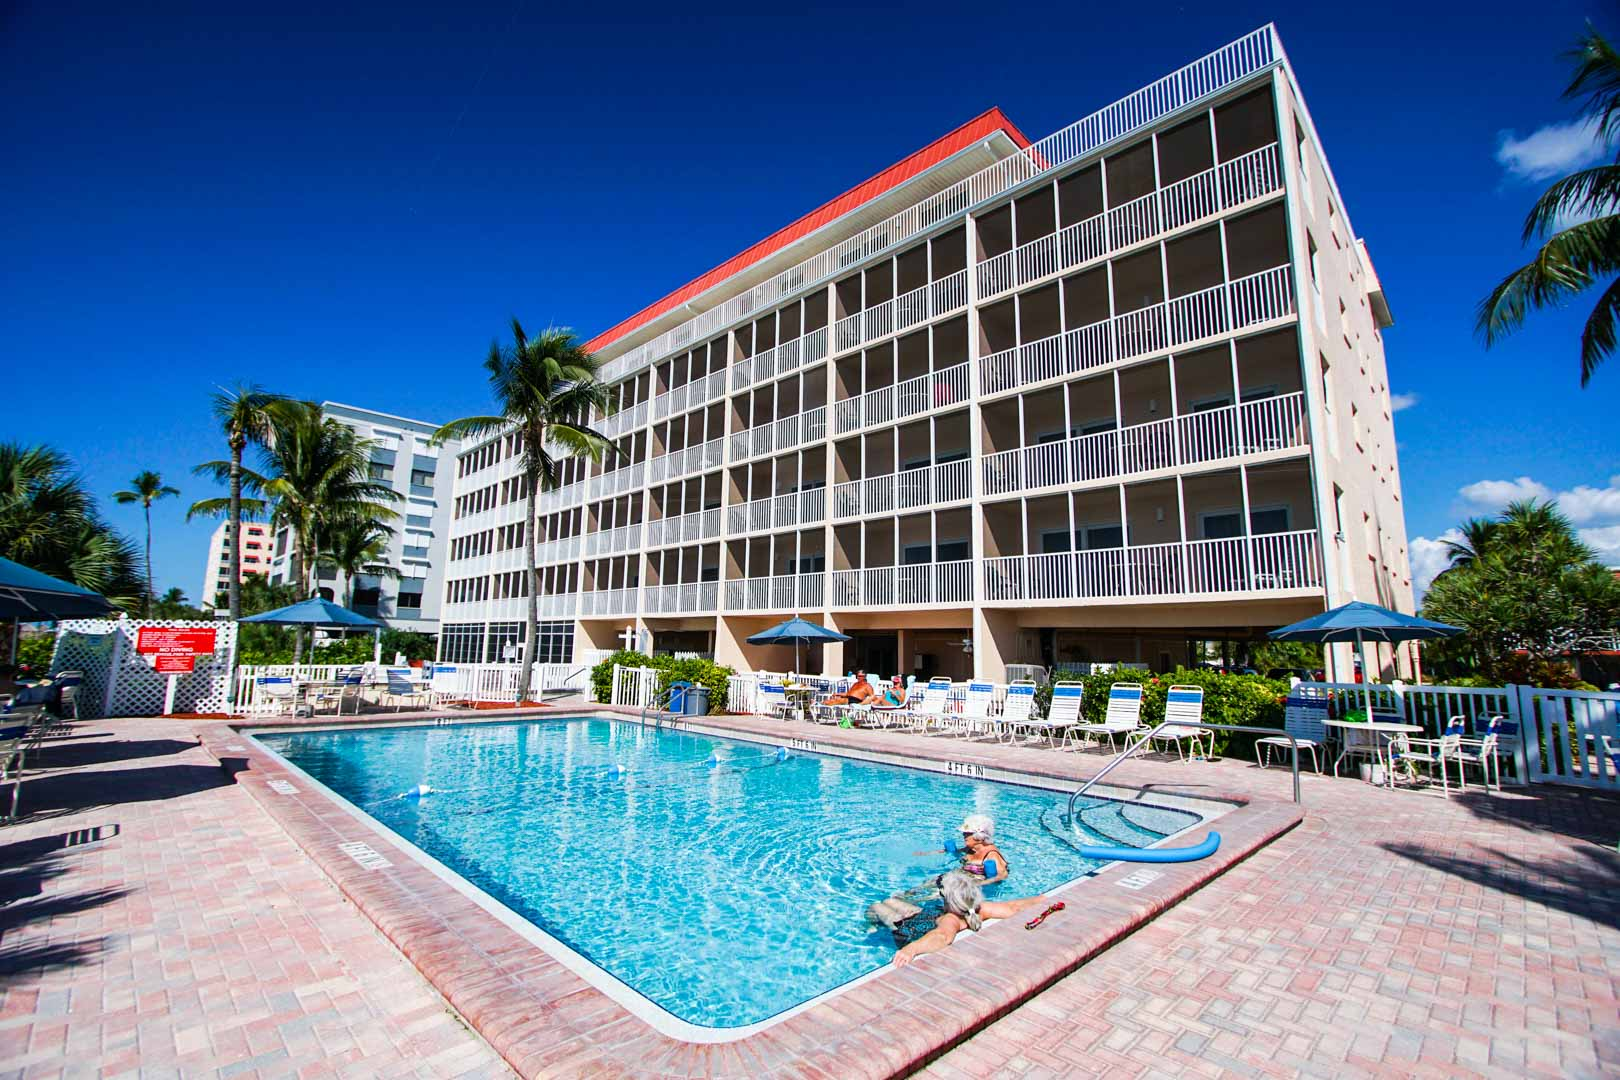 A crisp outdoor swimming pool at VRI's Windward Passage Resort in Fort Myers Beach, Florida.